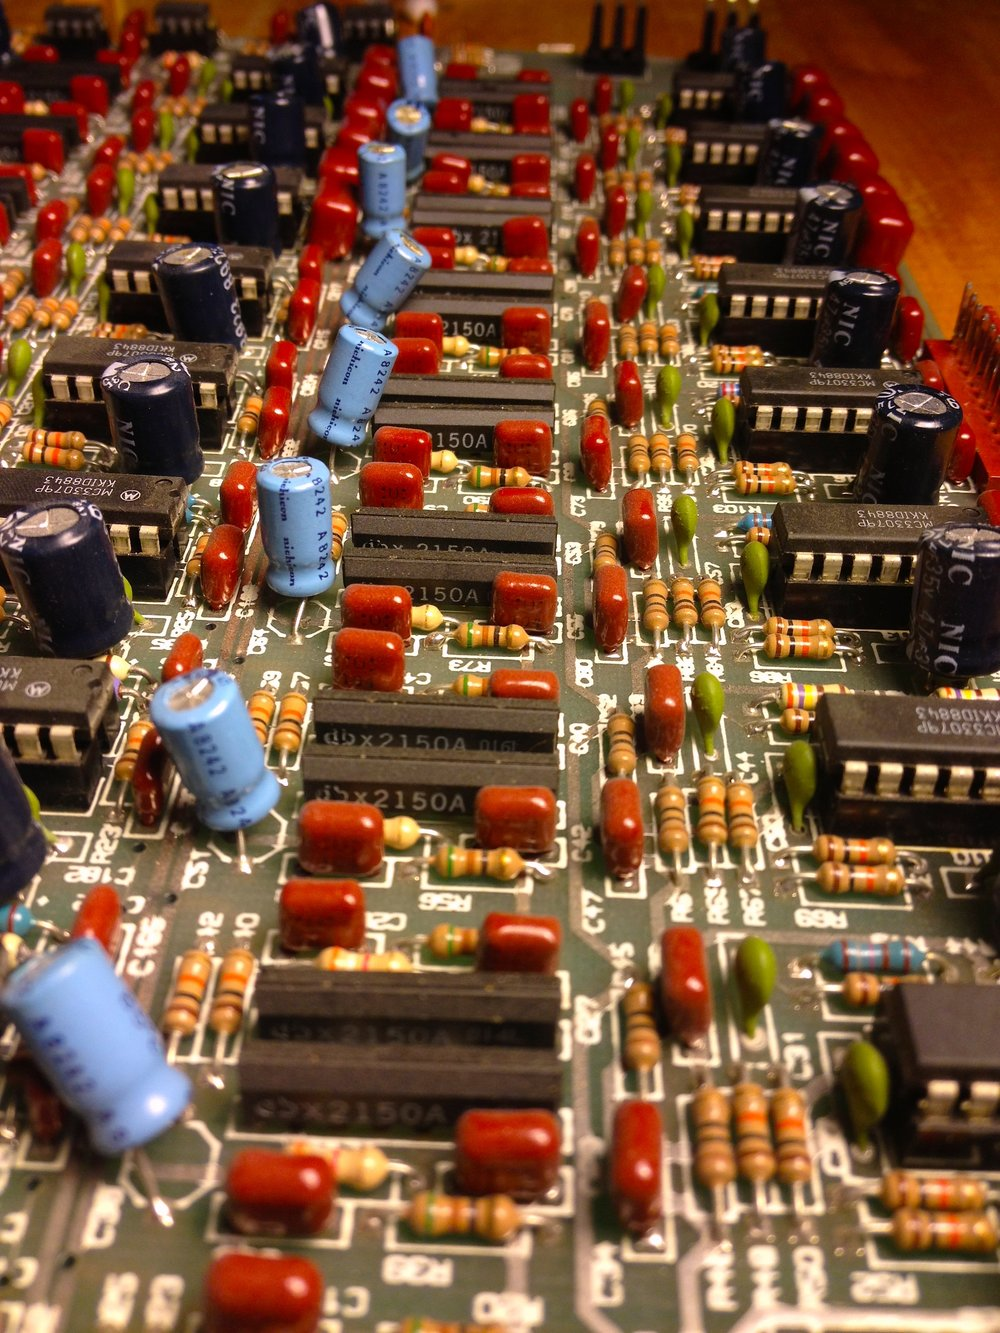 15-tailor-hits-dynamic-eq-processing-board-3.jpg